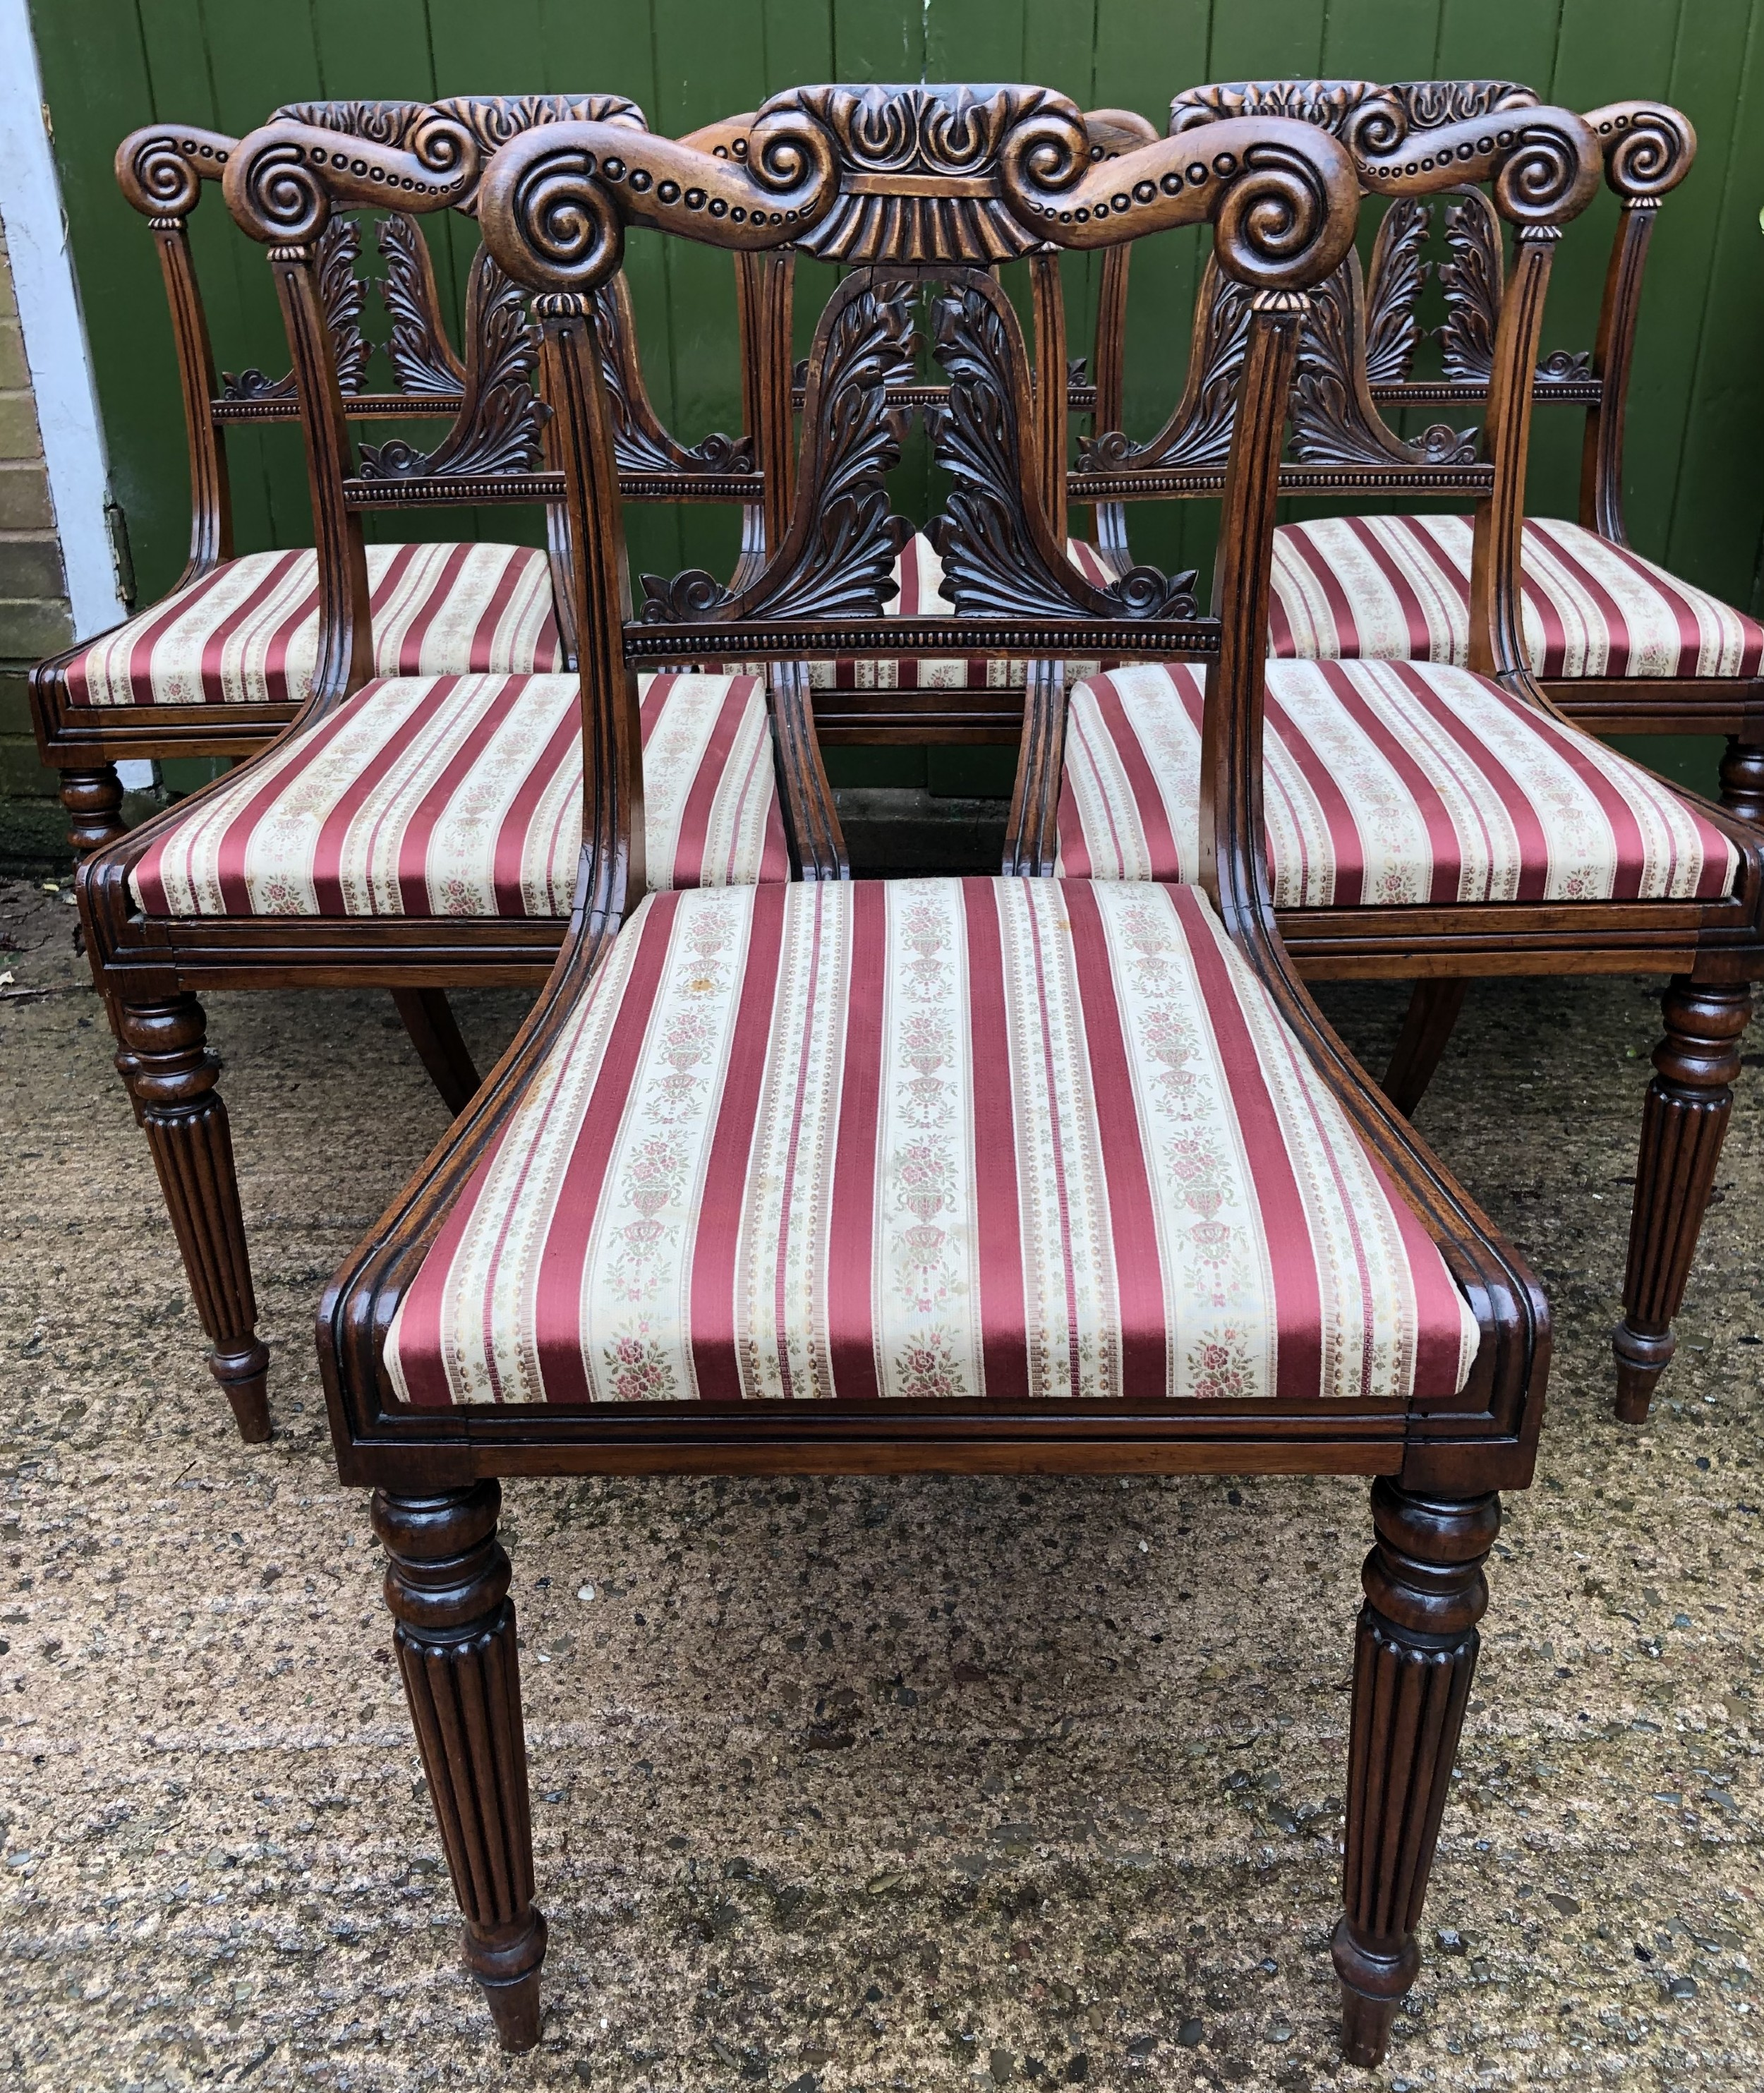 set of 6 early c19th george iv period carved rosewood dining chairs in the manner of gillows of lancaster